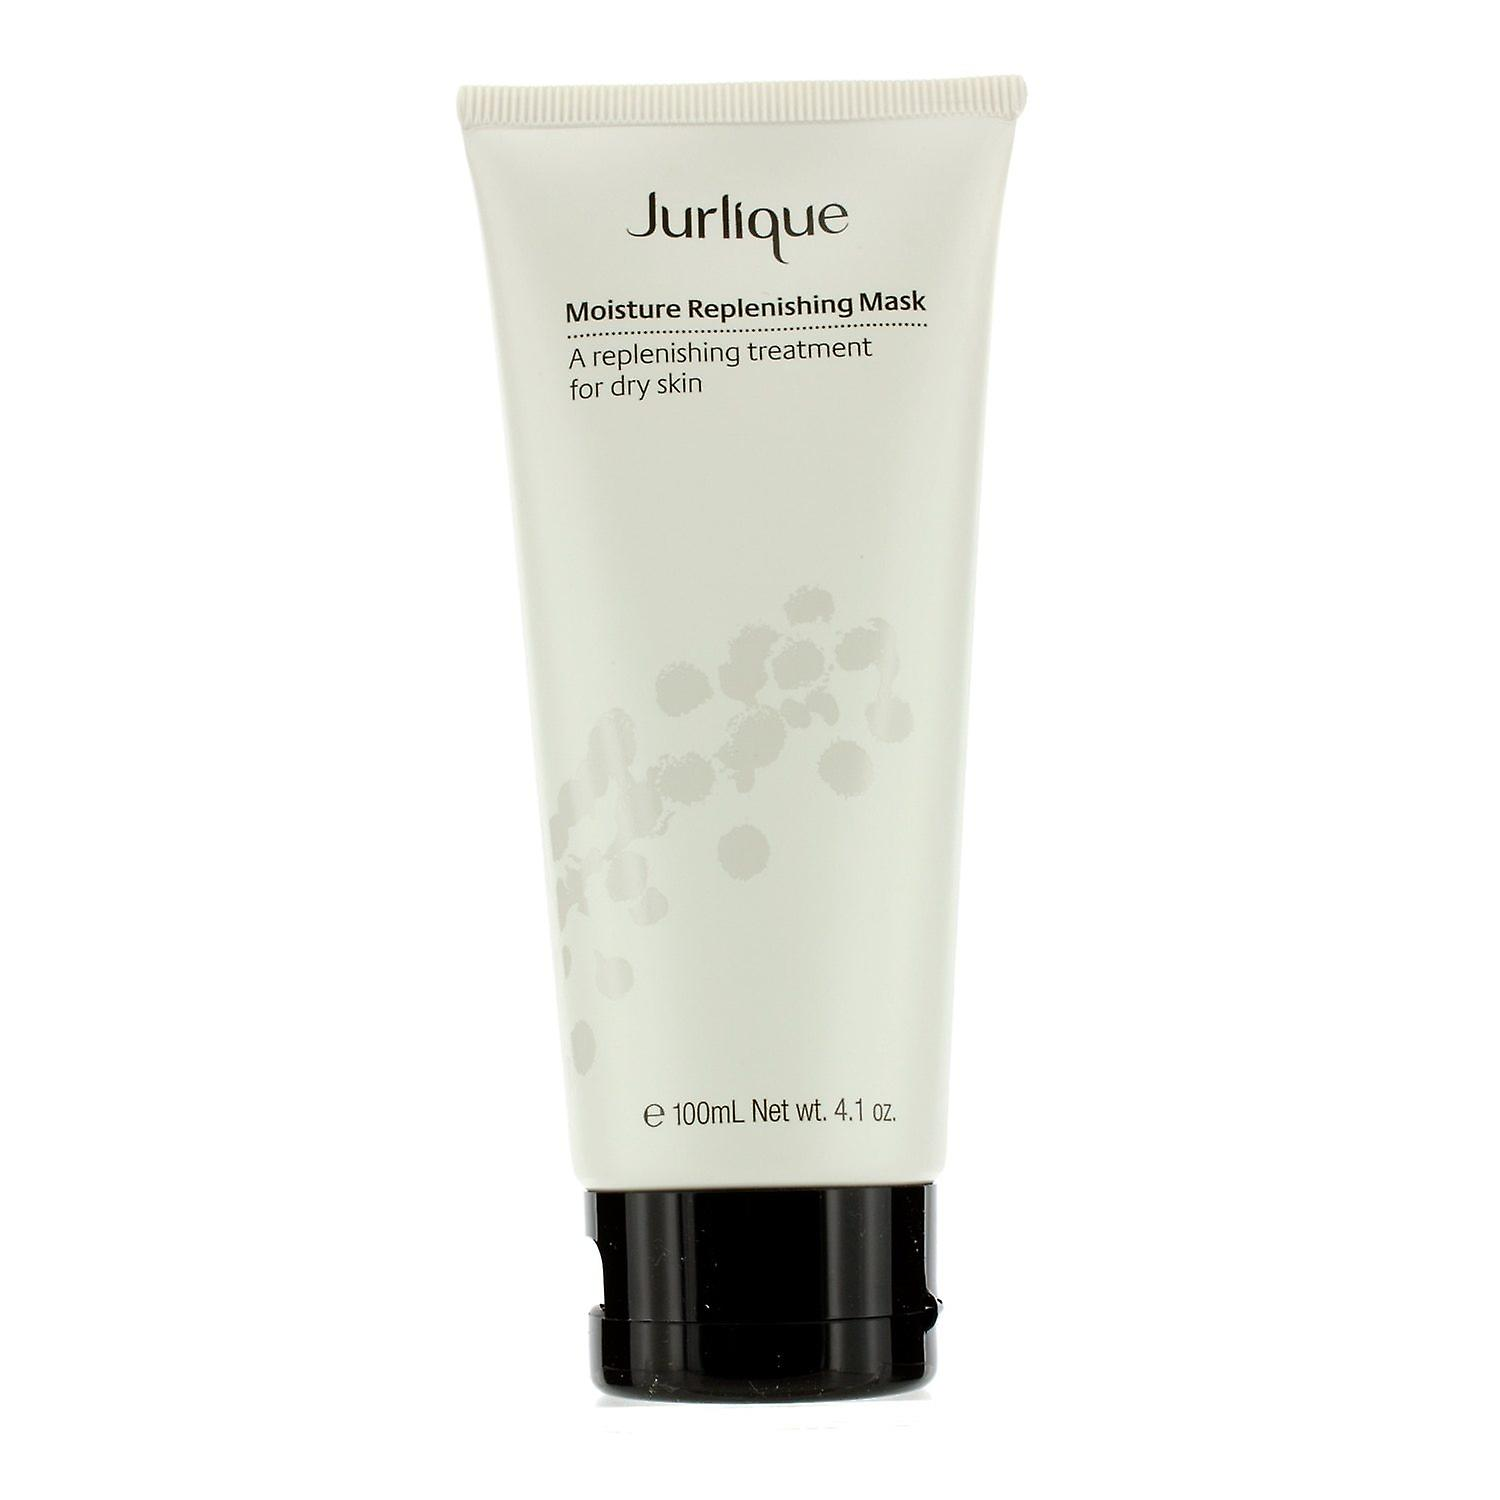 Jurlique umidità reintegro Mask 100ml / 3.3 oz